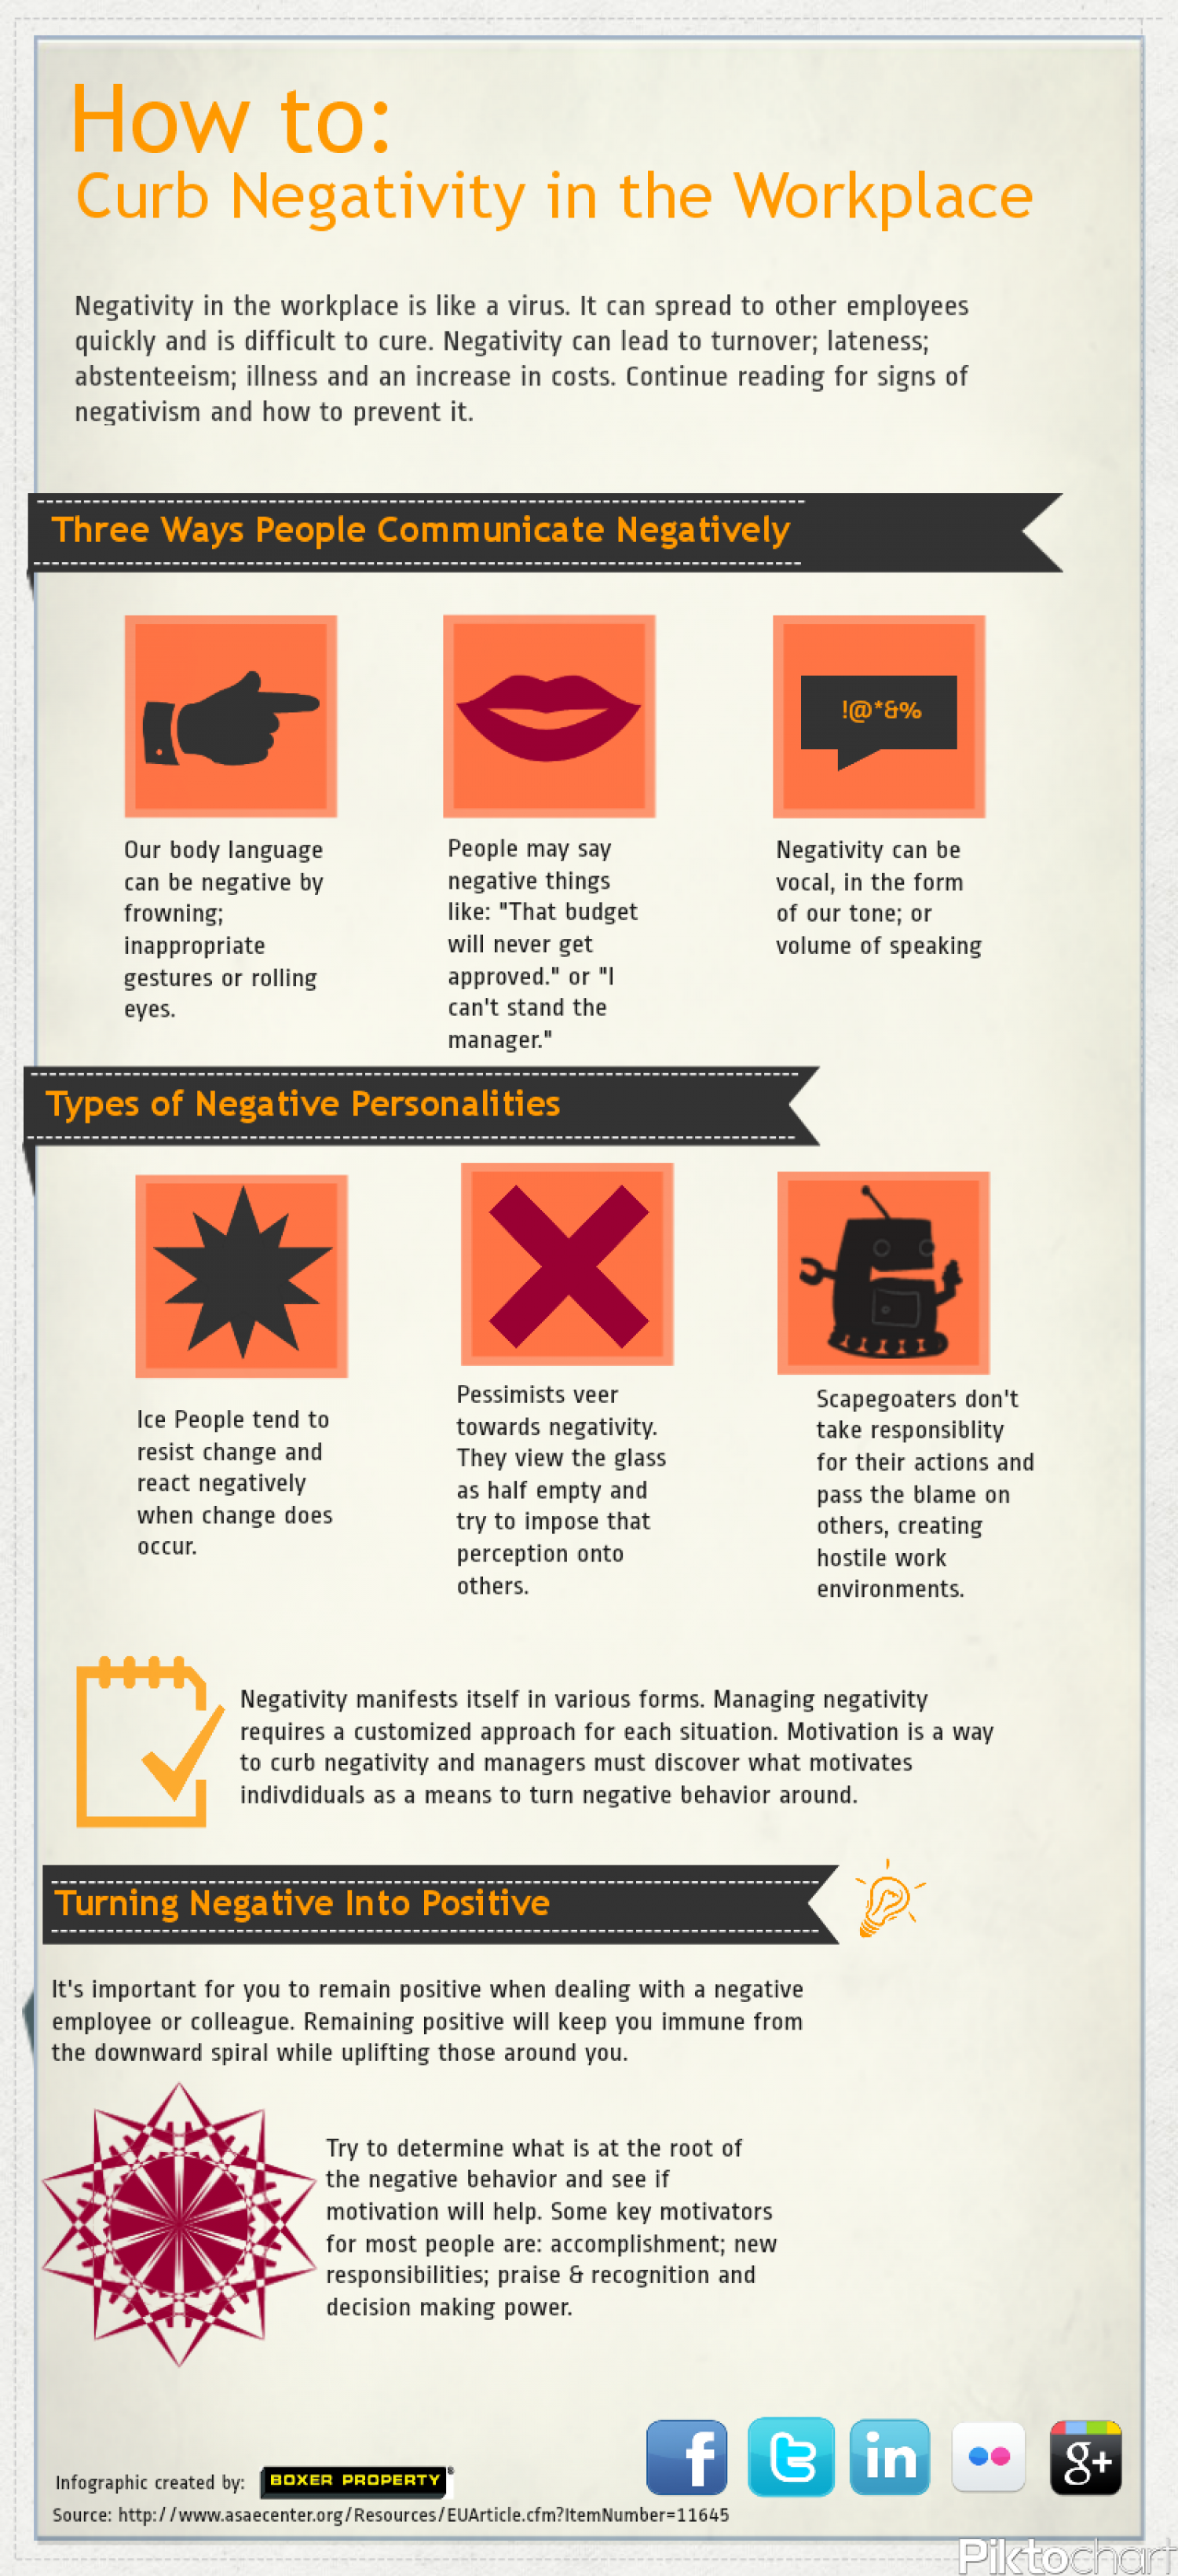 How to Curb Negativity in the Workplace Infographic